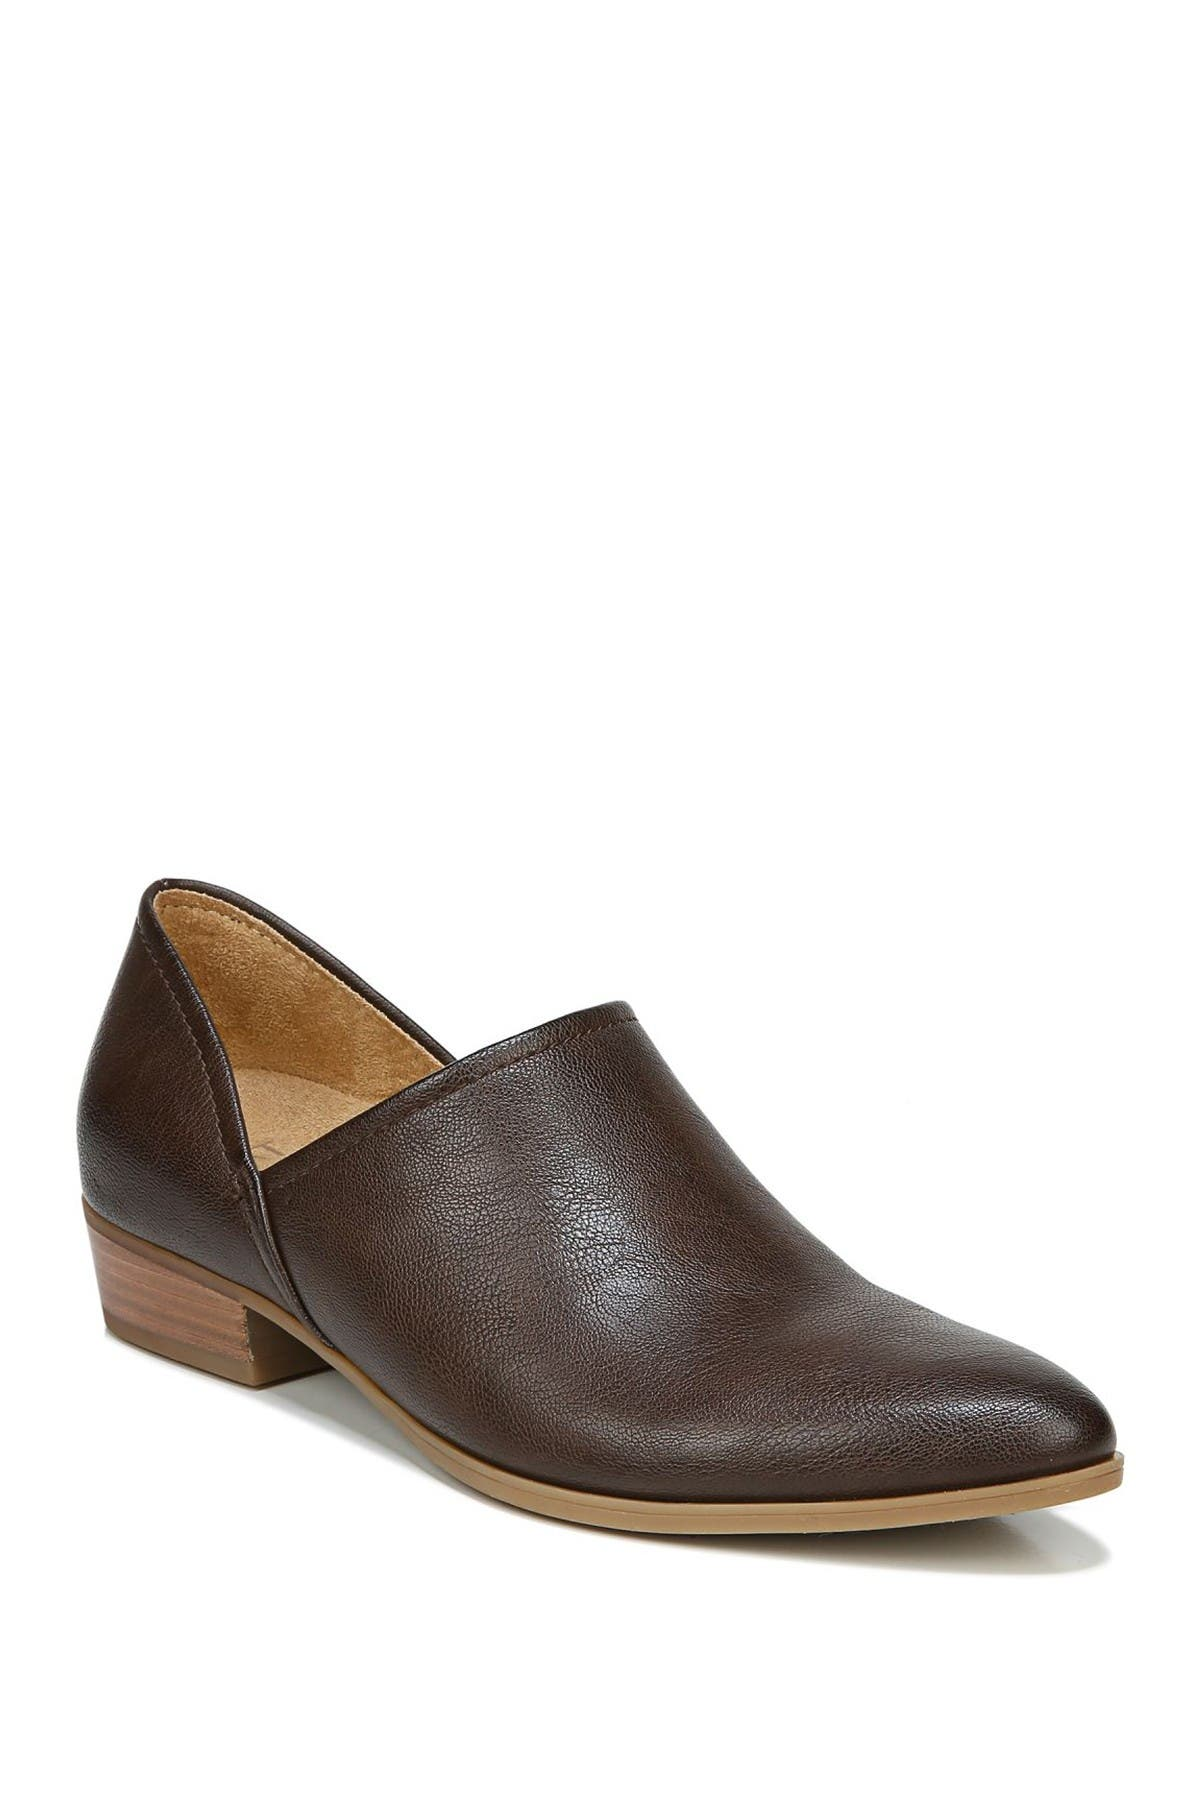 Naturalizer | Carlyn Slip-On Low Boot